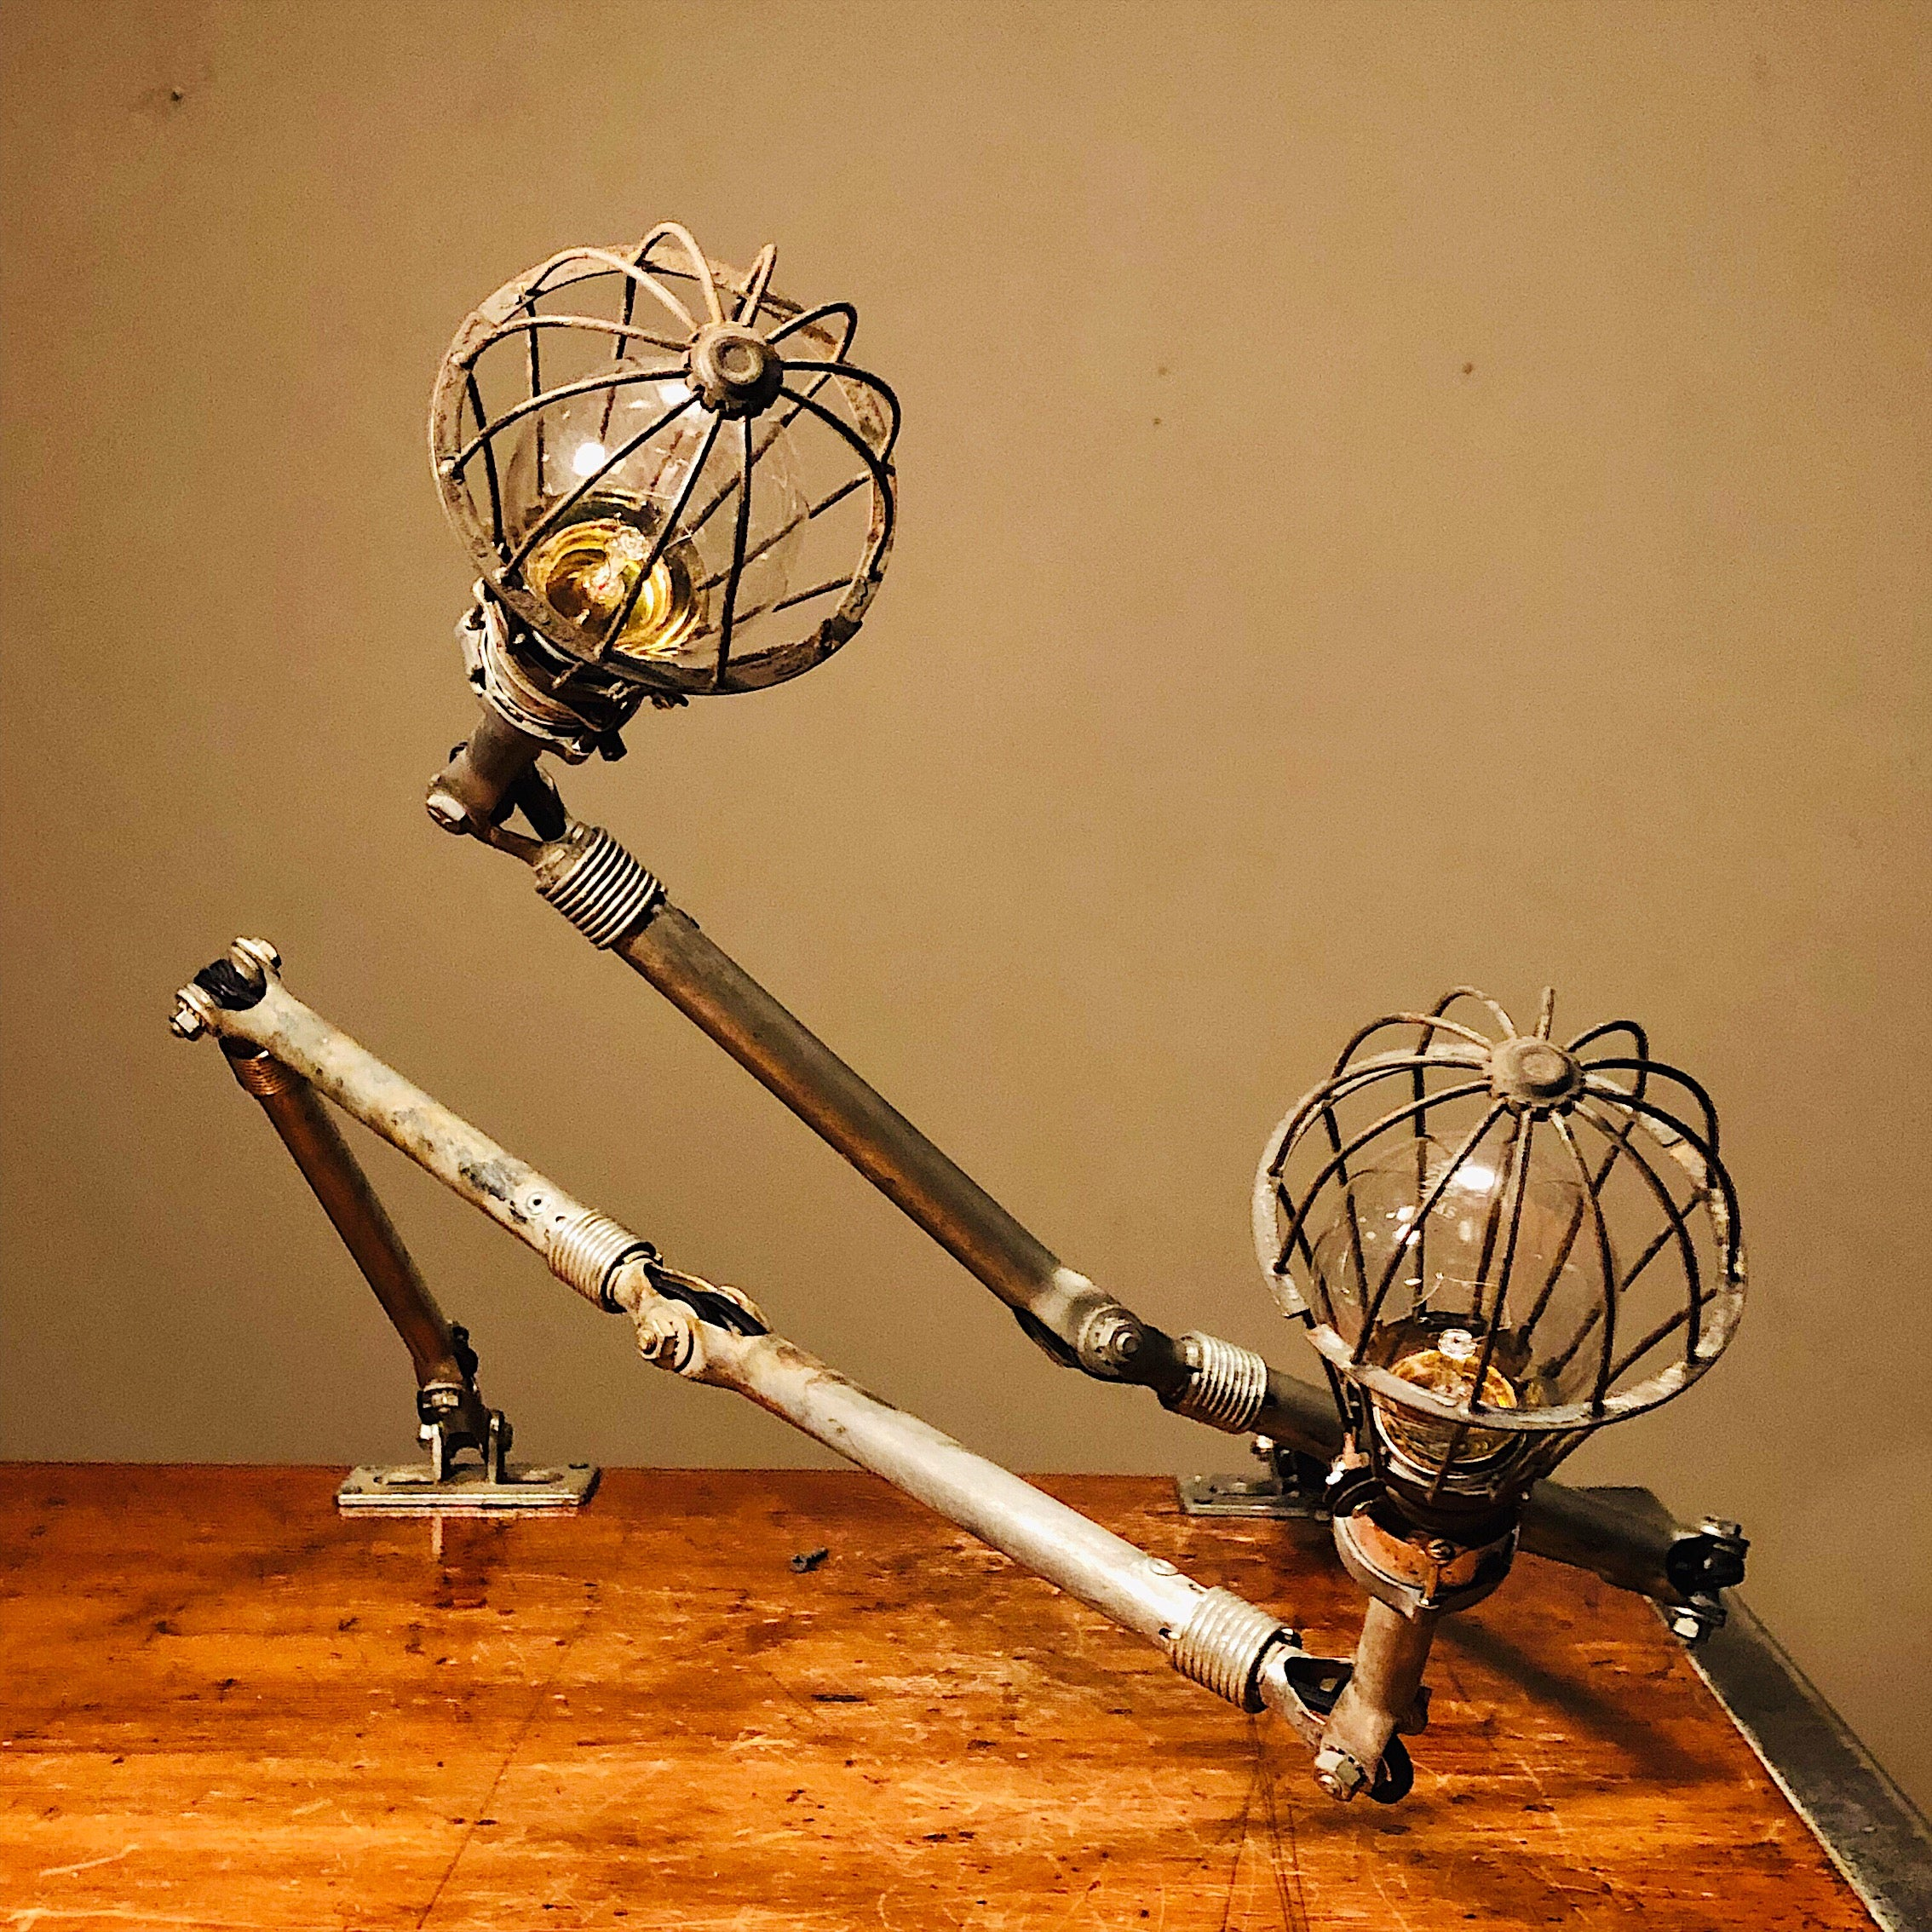 Vintage Ajusco Loc Industrial Task Lights - Set of Articulating Lamps with Cage Protectors - 1950s - Industrial Decor  5 Knuckles